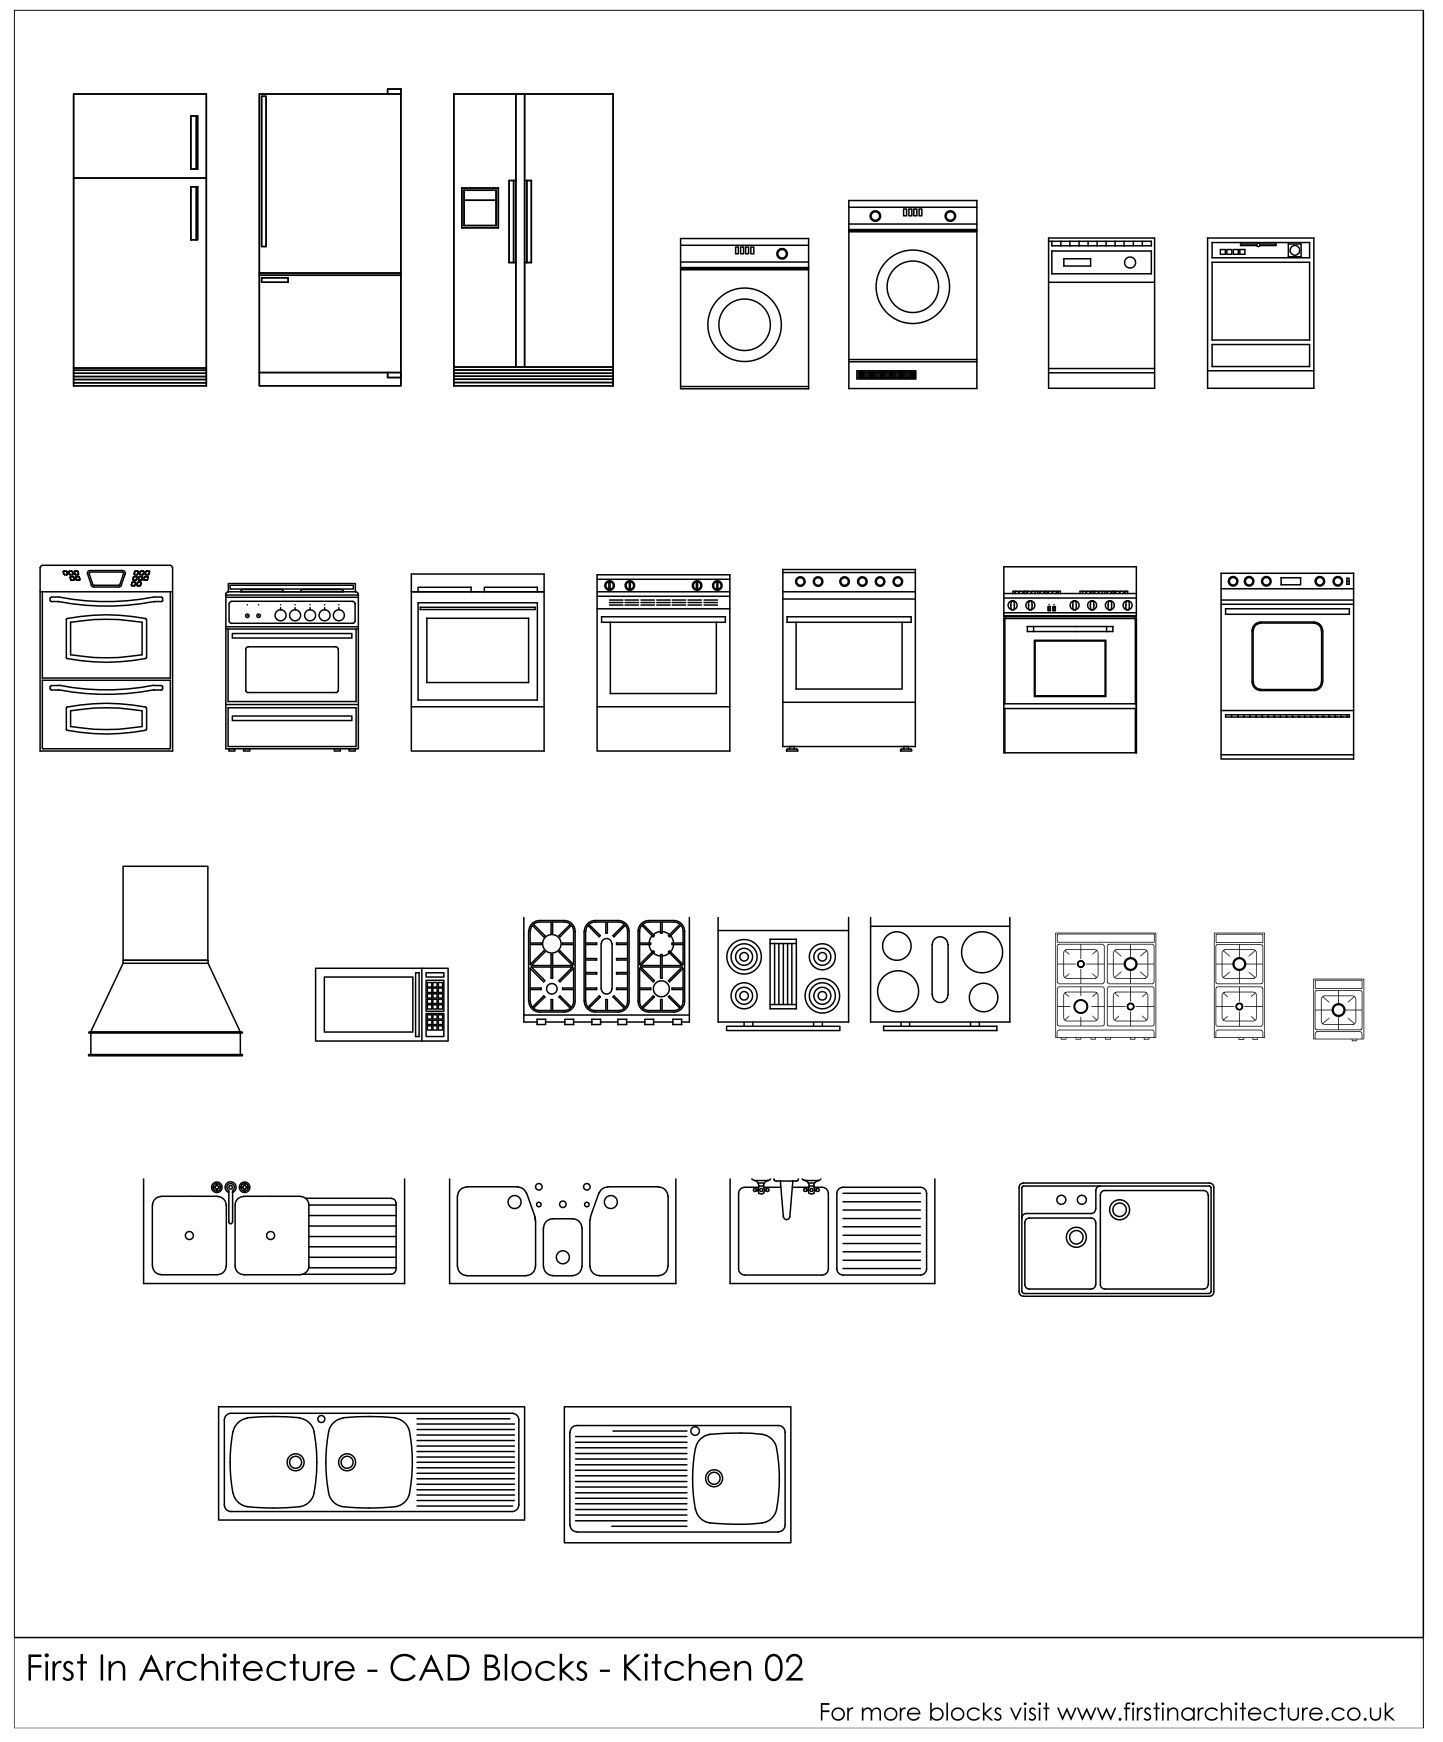 Bedroom Elevations Interior Design Elevation Blocks What: Free CAD Blocks - Kitchen Appliances 02